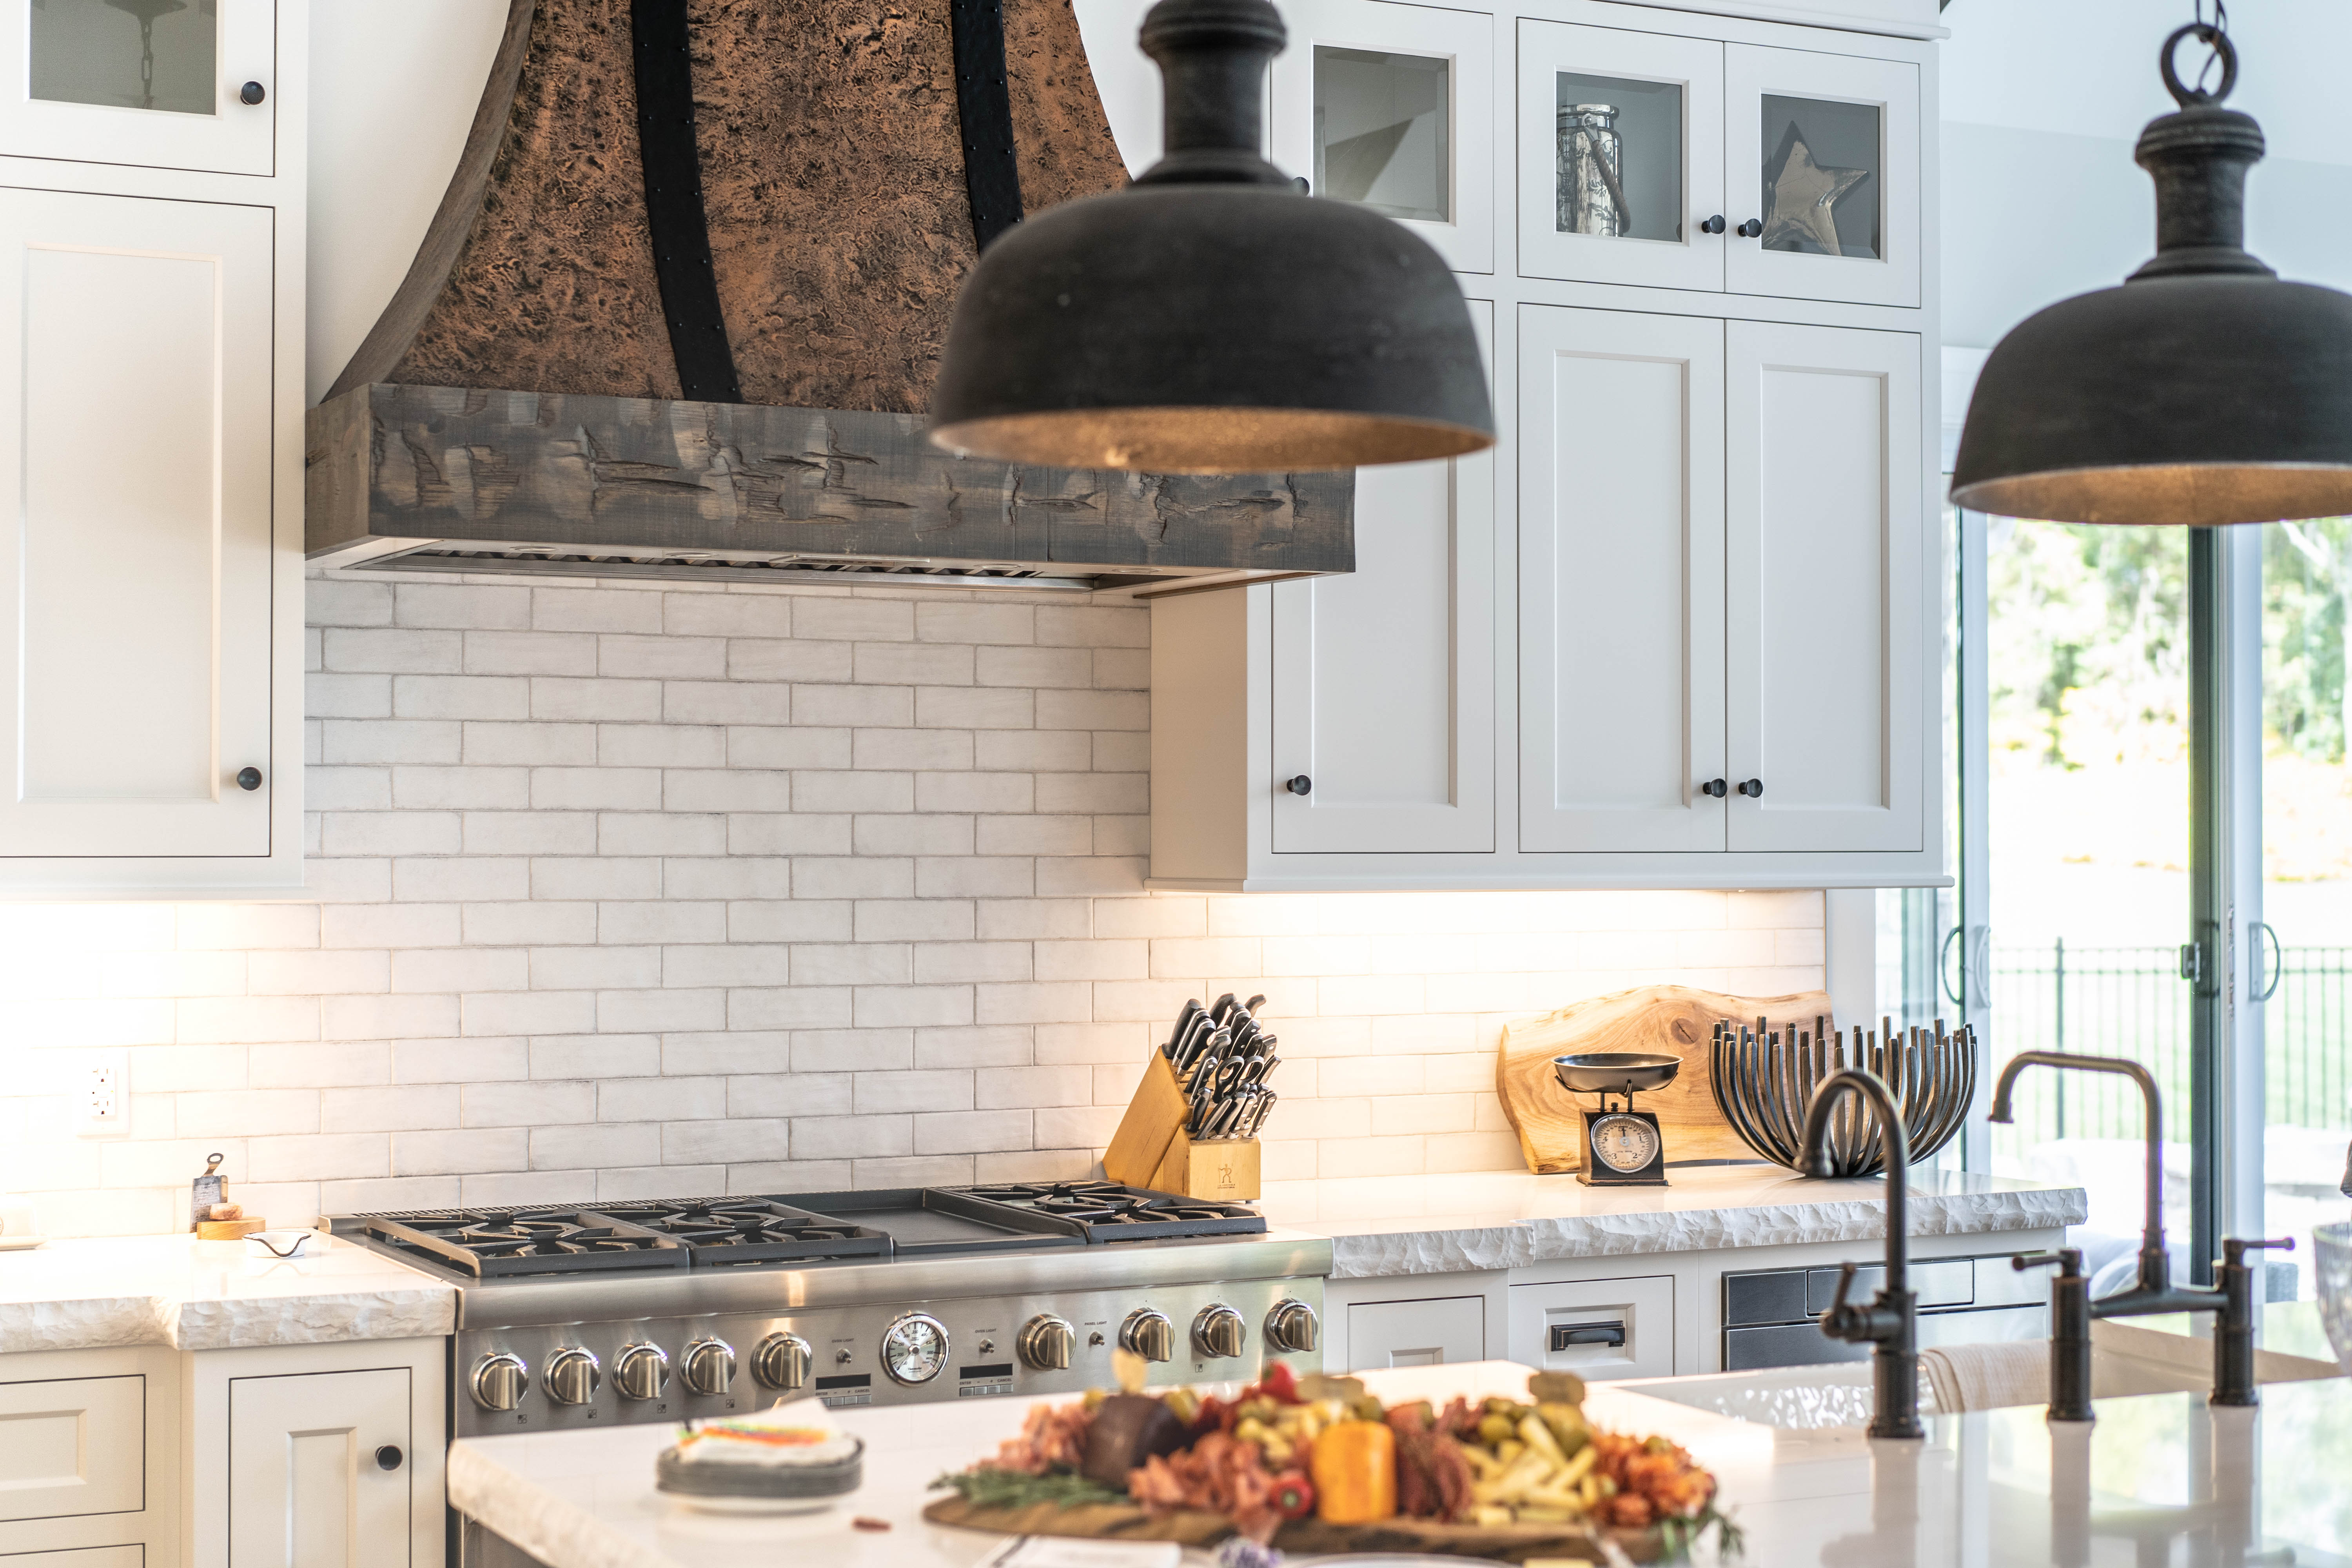 Chervin-kitchen-metal-hood-distressed-wood